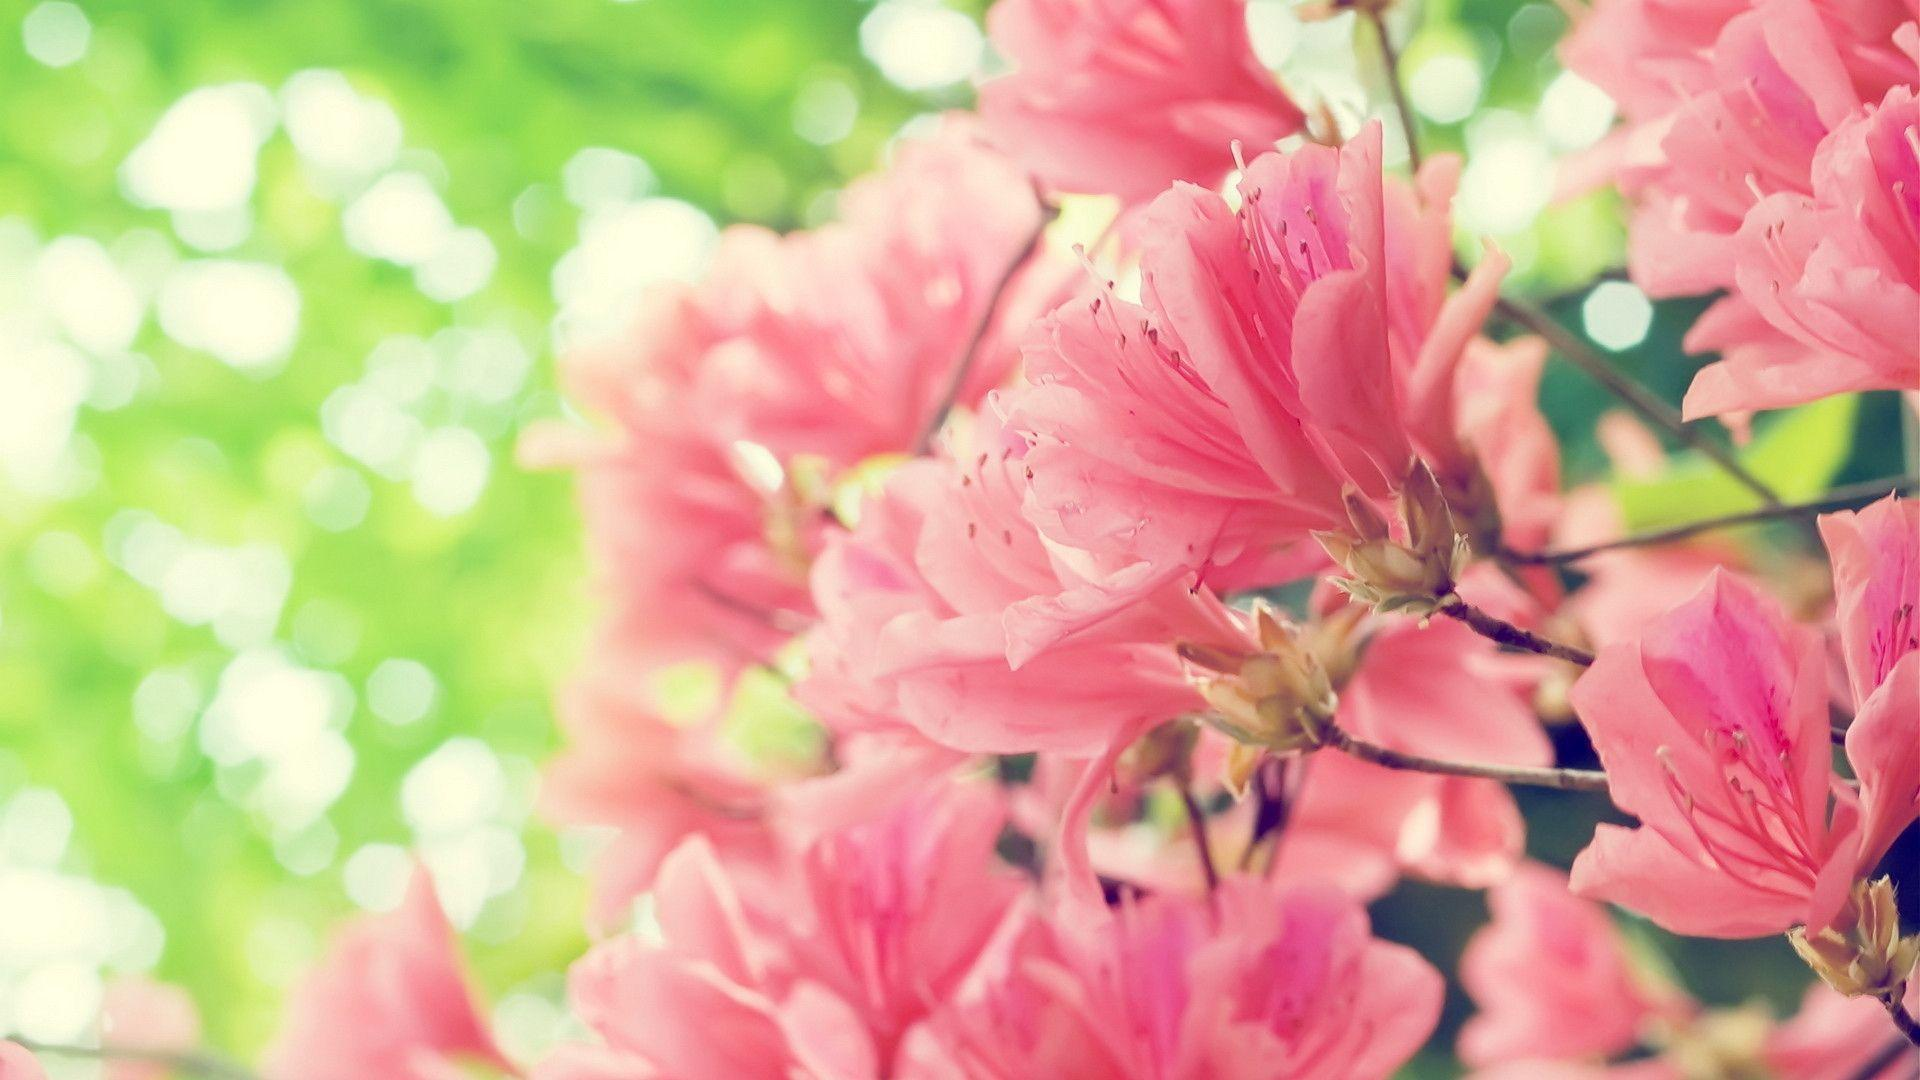 Spring flowers backgrounds desktop wallpaper cave oukasfo wallpaper leaves green plant hd picture image mightylinksfo